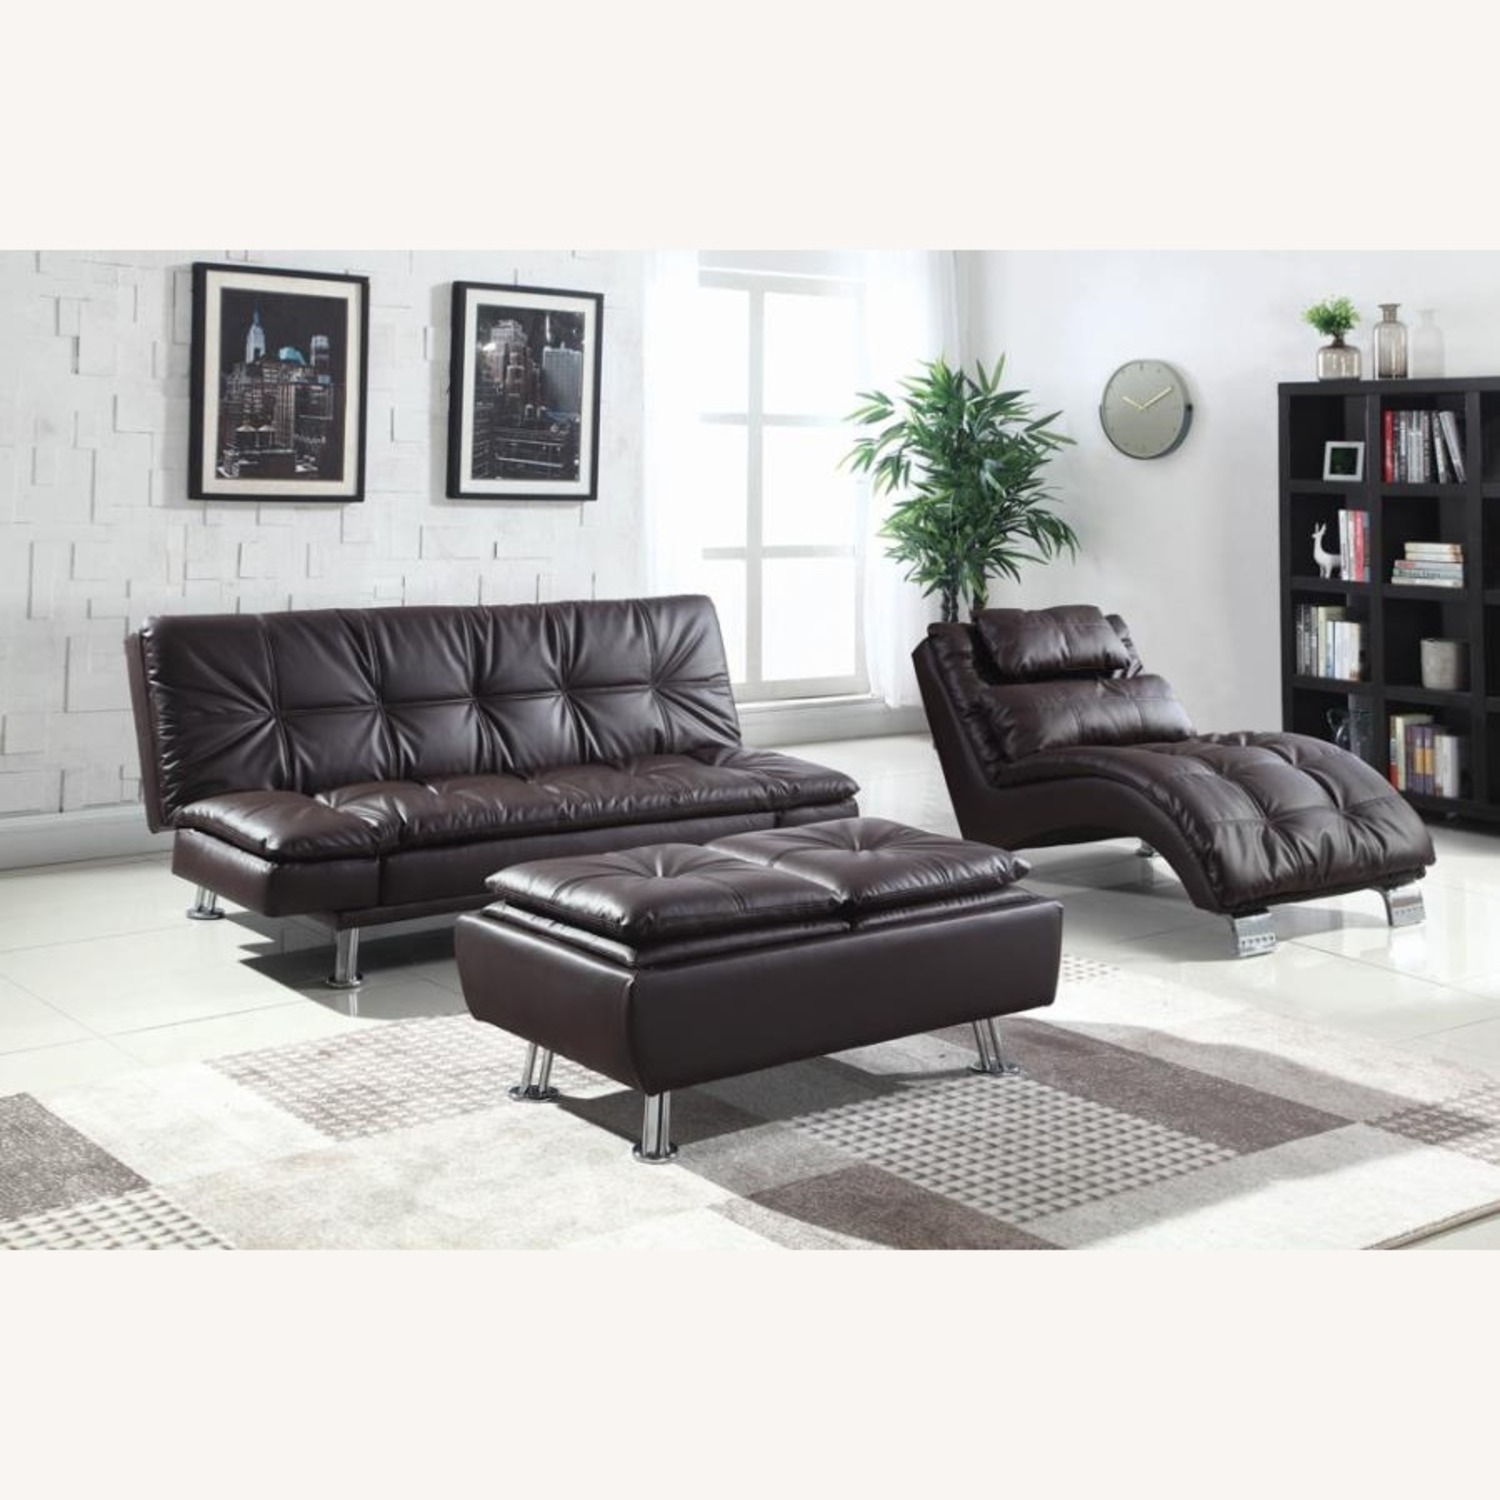 Sofa Bed In Brown Leatherette W/ Chrome Legs - image-3